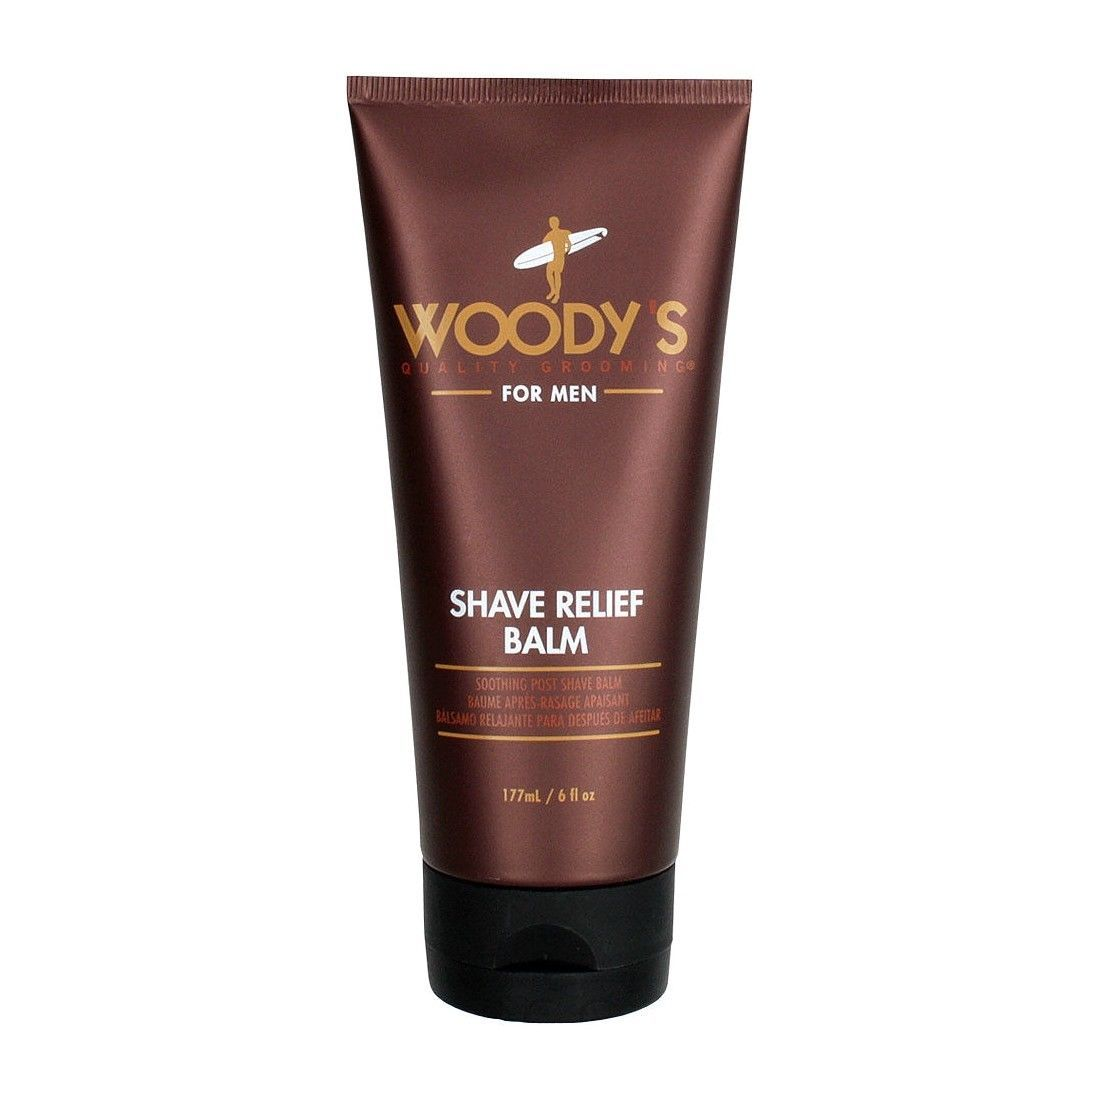 Woody's Shave Relief Balm Soothing Post Shave Balm 177ml 6 fl oz